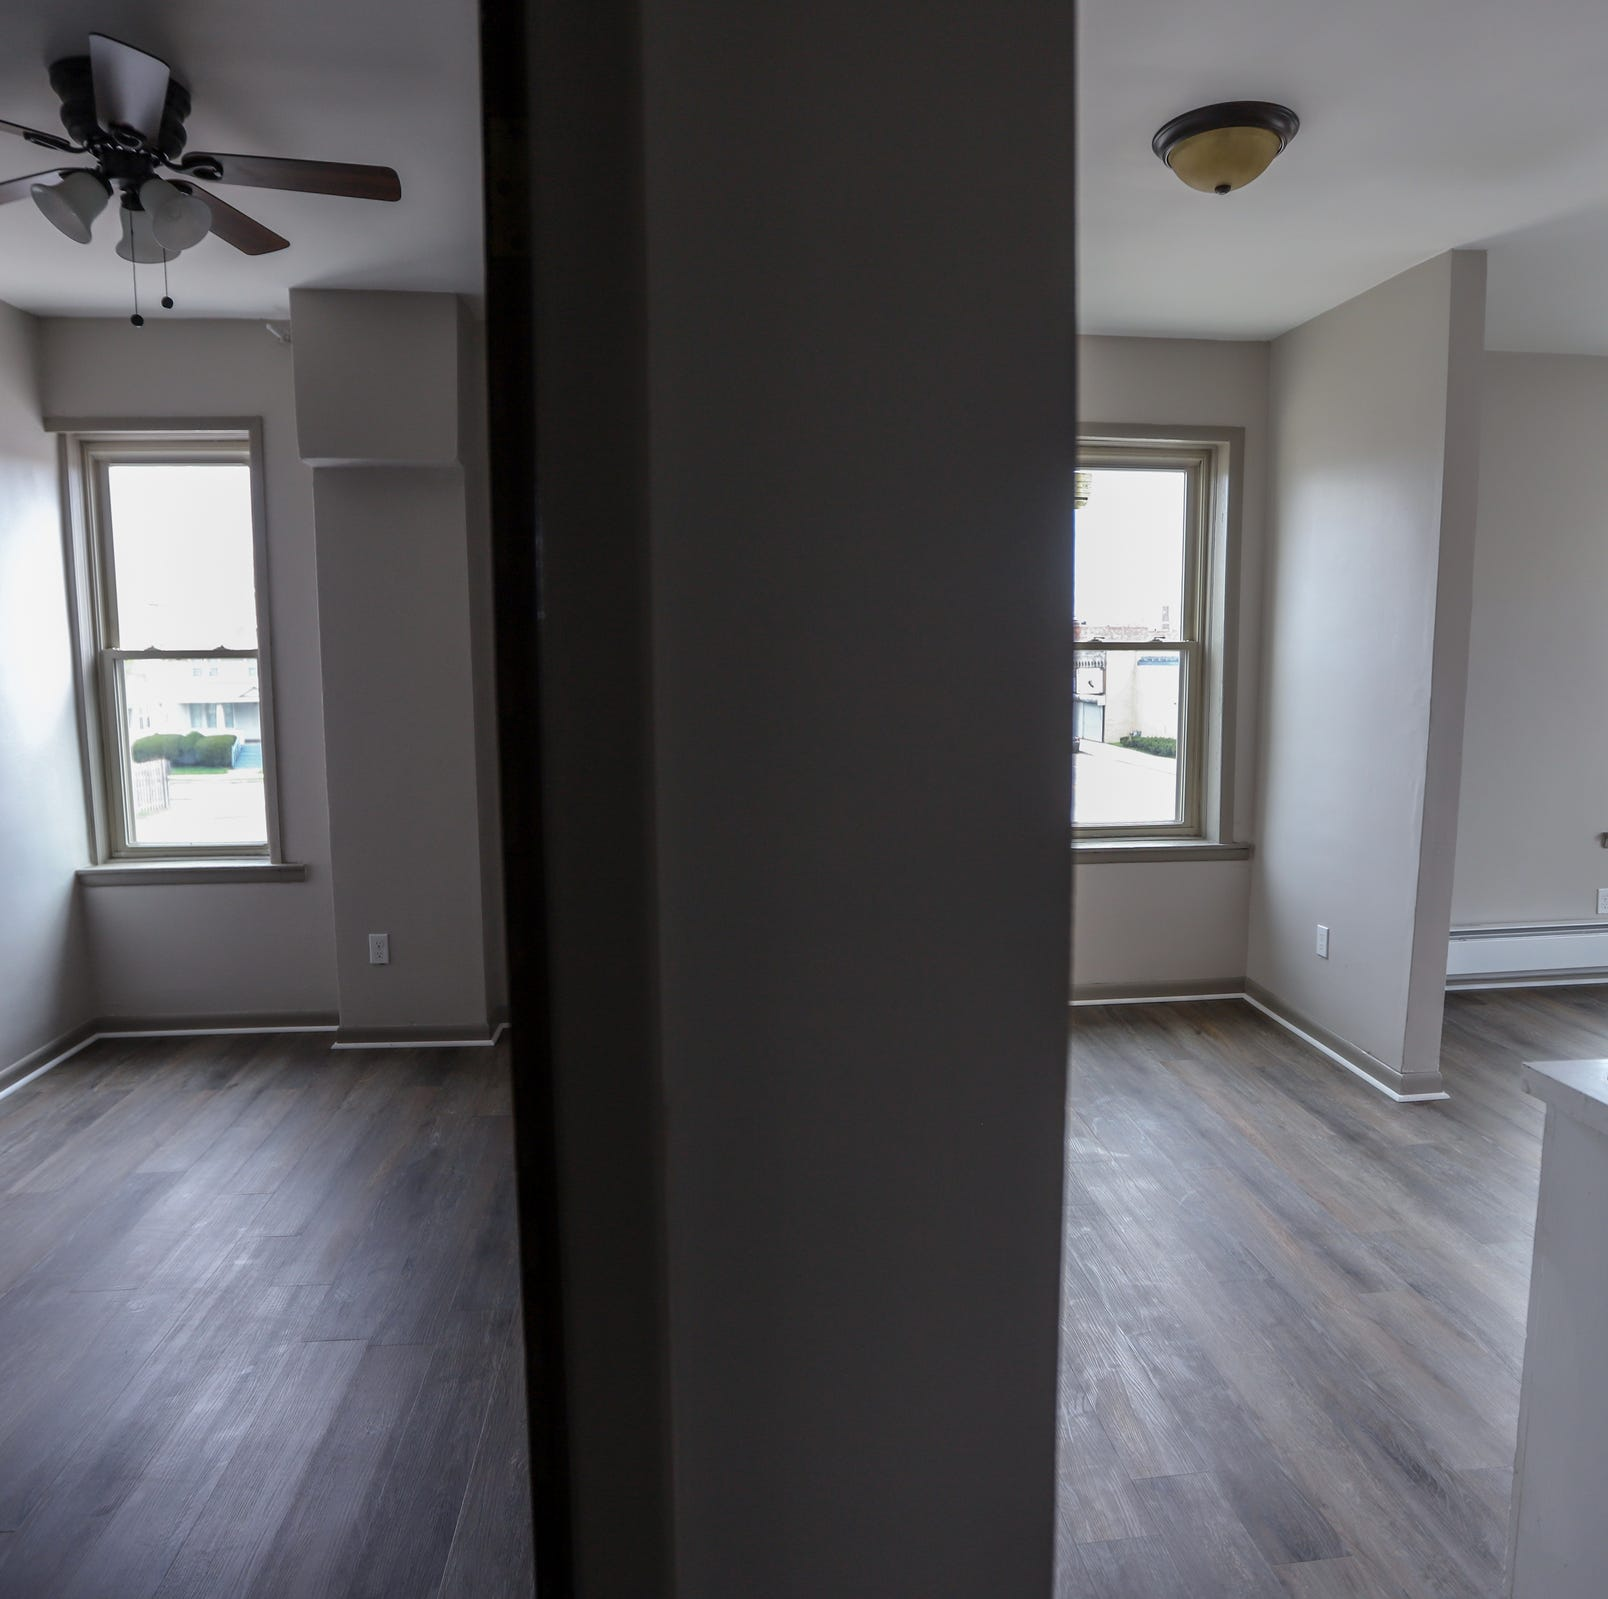 New Detroit apartments for rent for $750? Here's how that happened